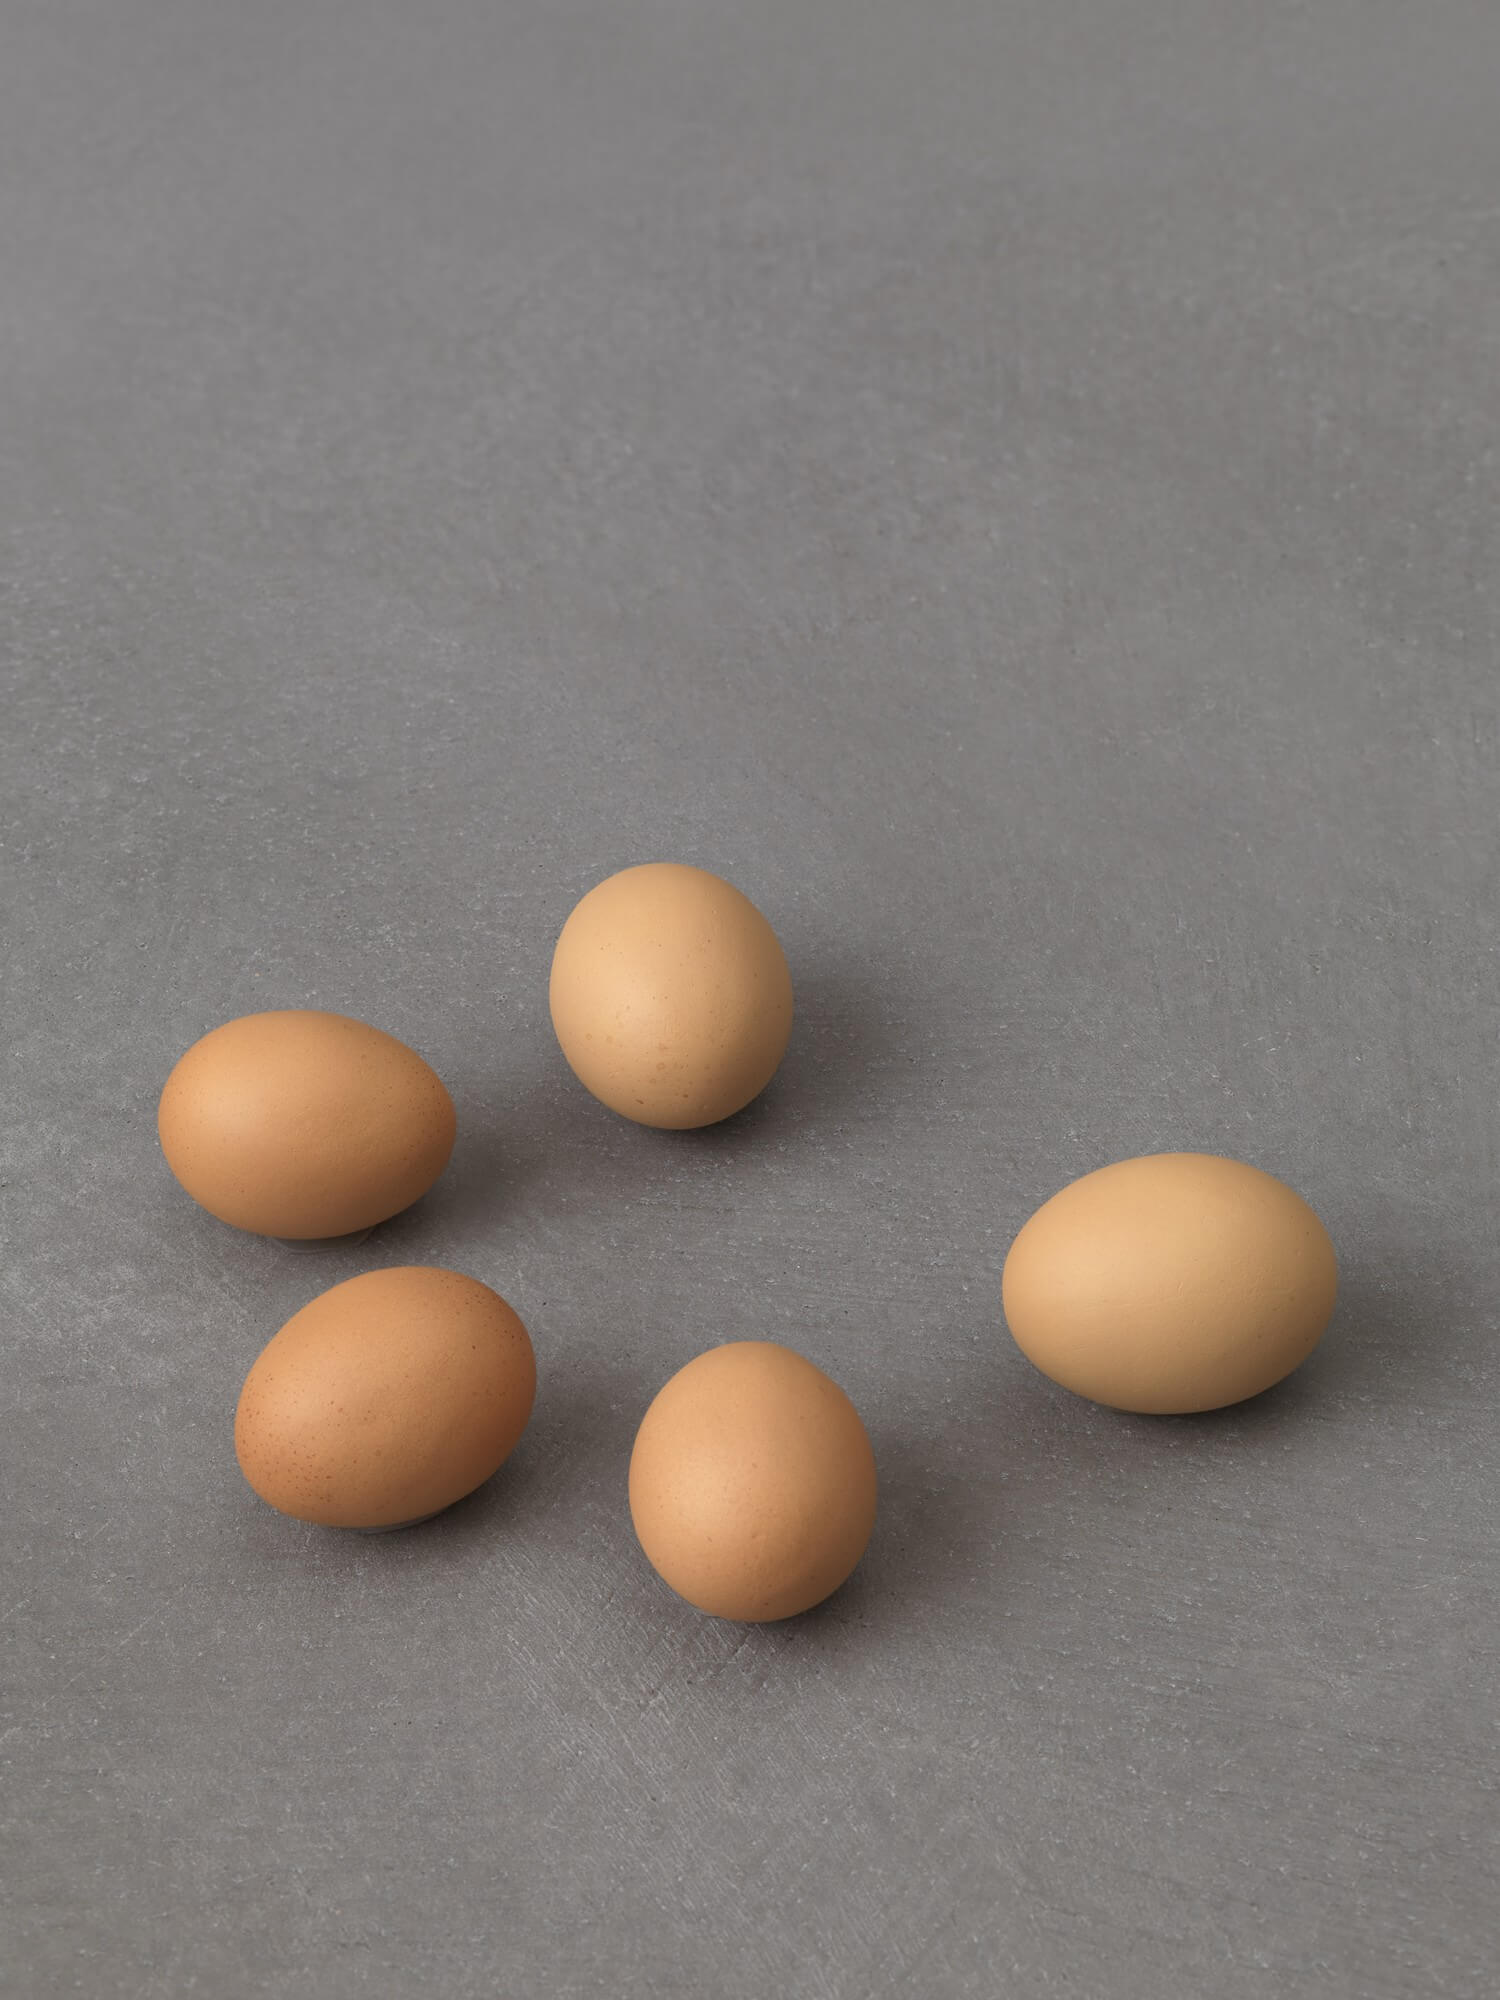 still.life (five eggs) | UGO RONDINONE